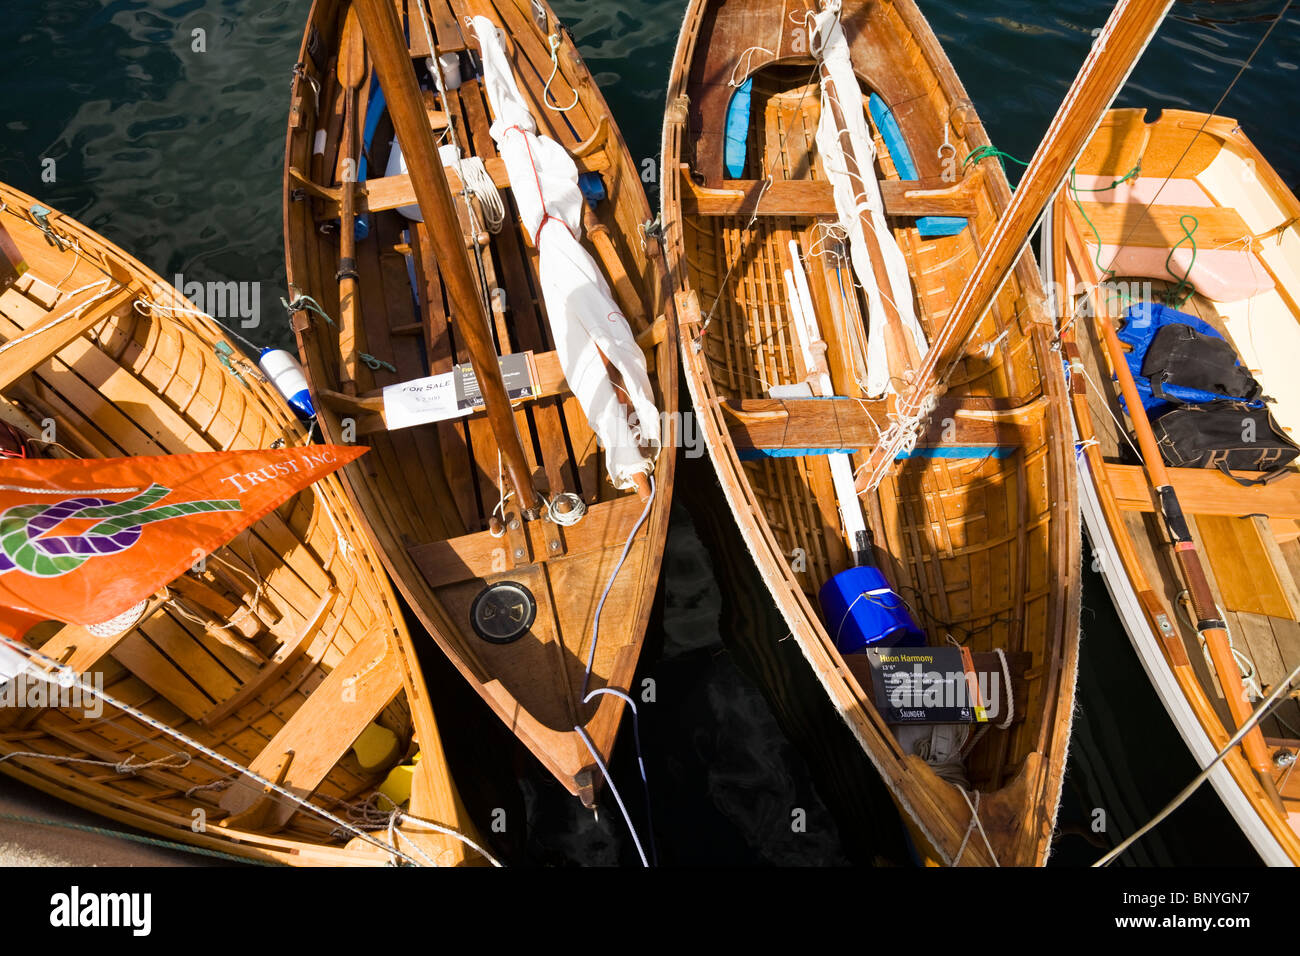 Wooden boats at Constitution Dock, during the Wooden Boat Festival.  Hobart, Tasmania, AUSTRALIA Stock Photo